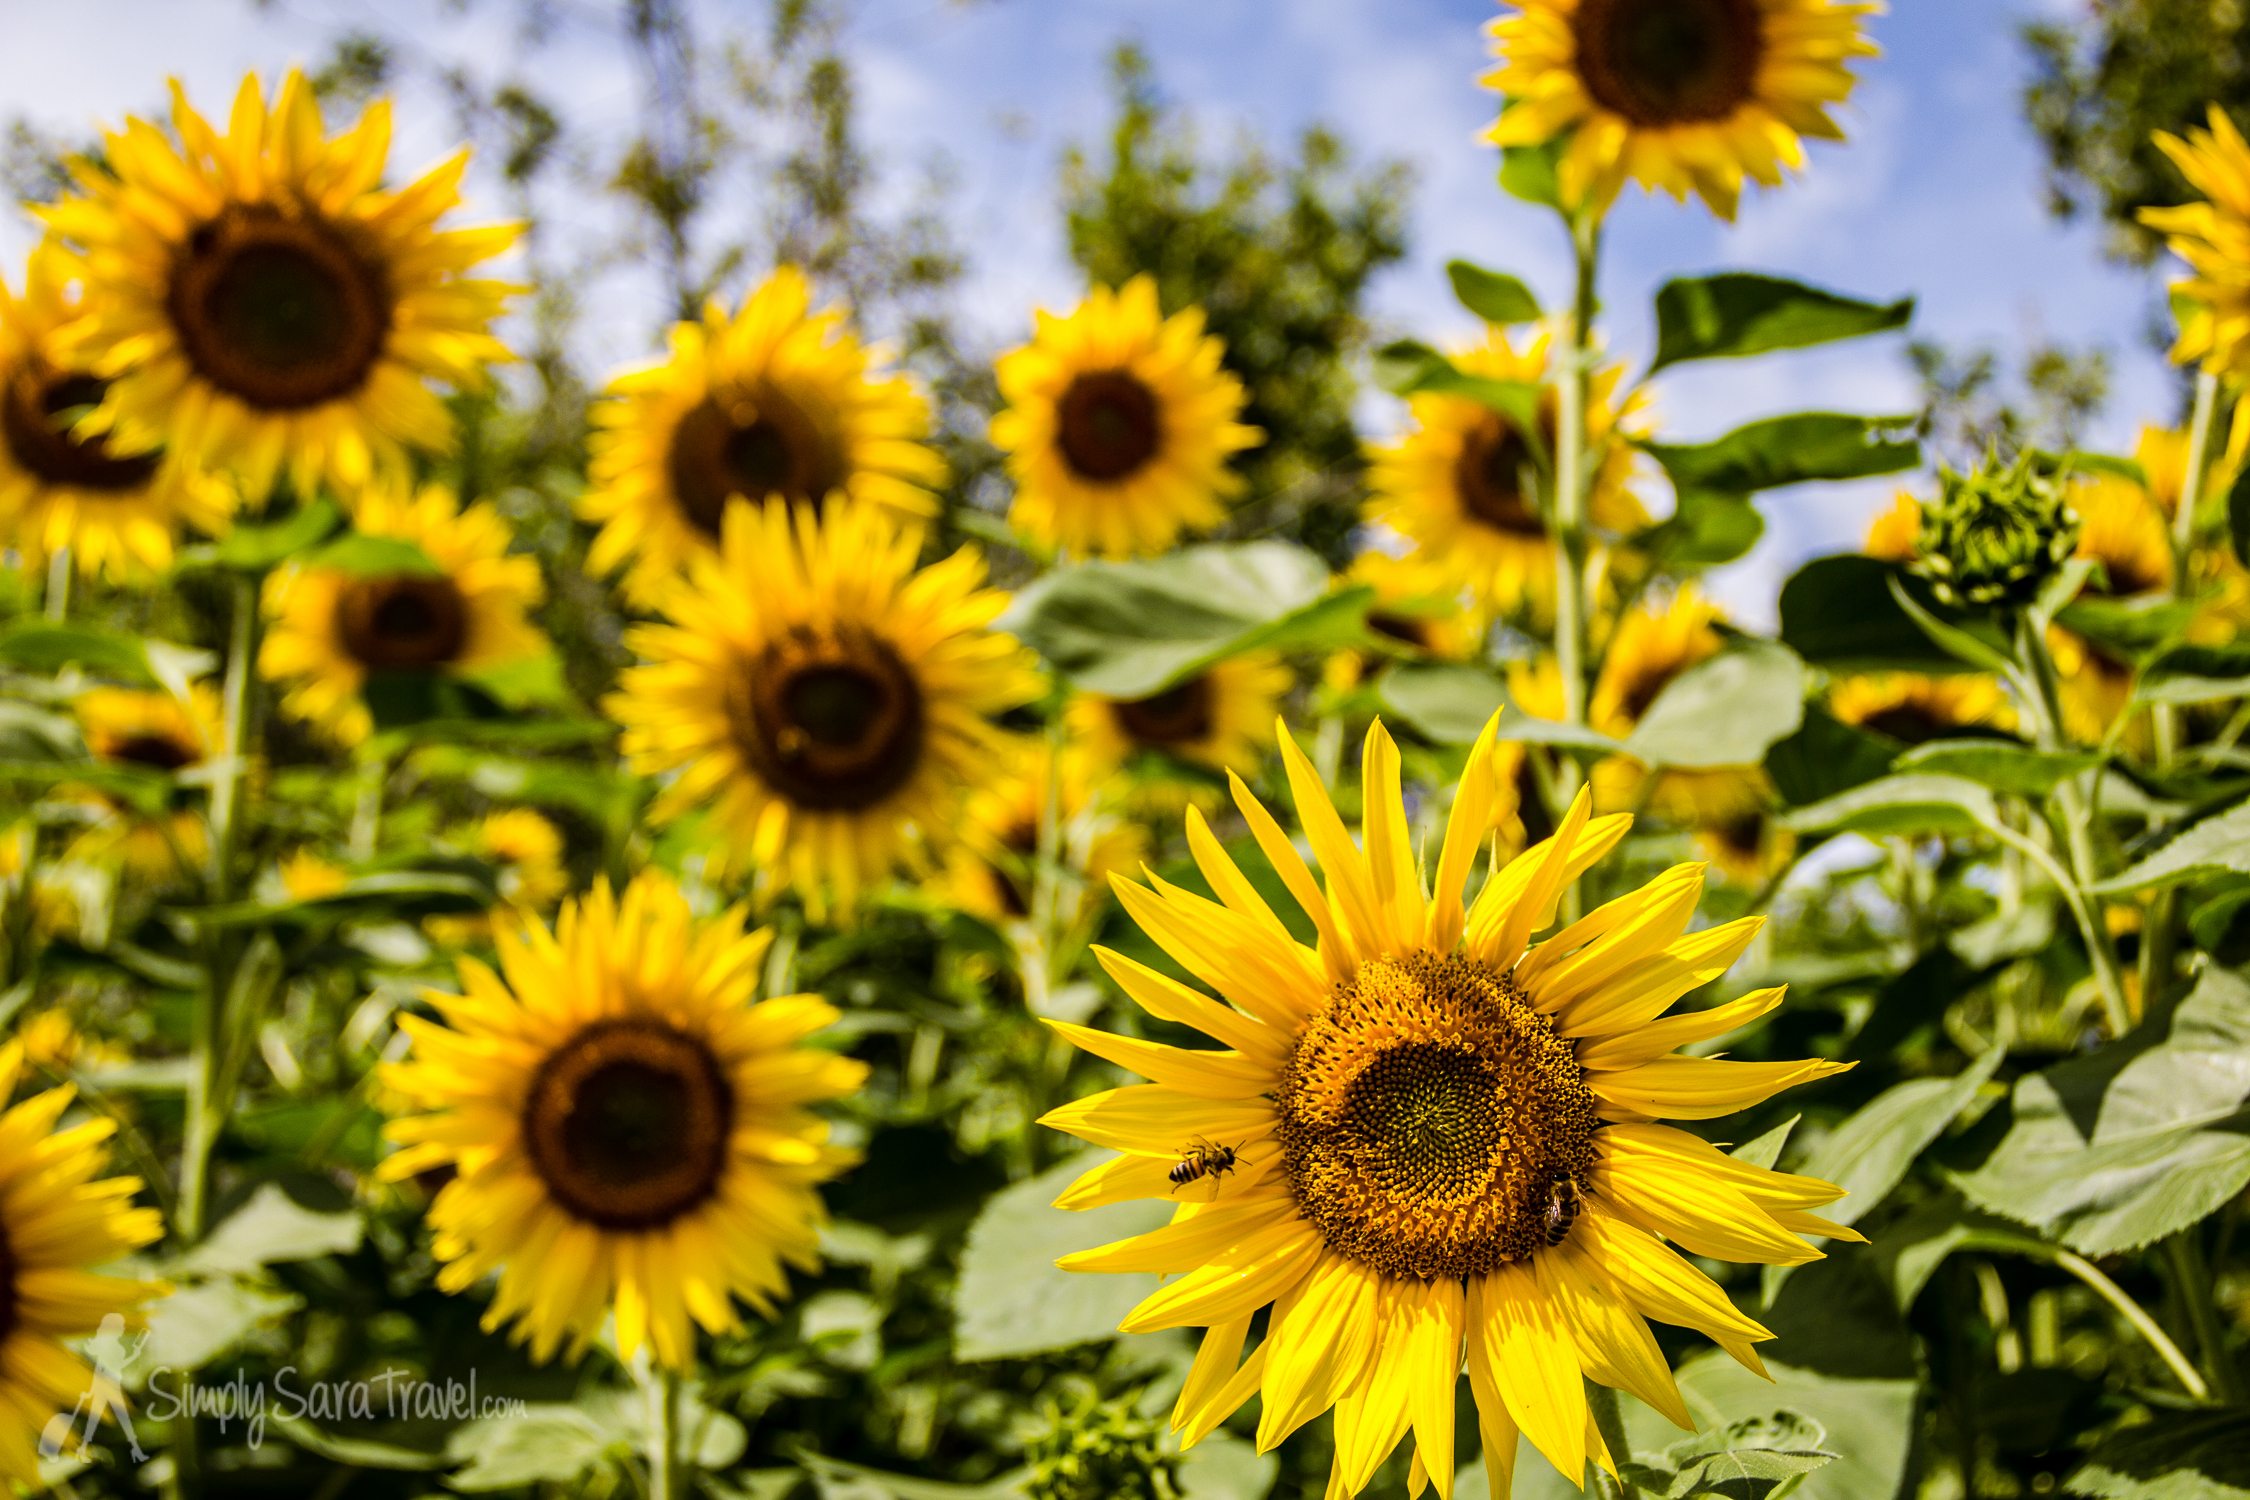 Sunflowers aren't just for Provence anymore